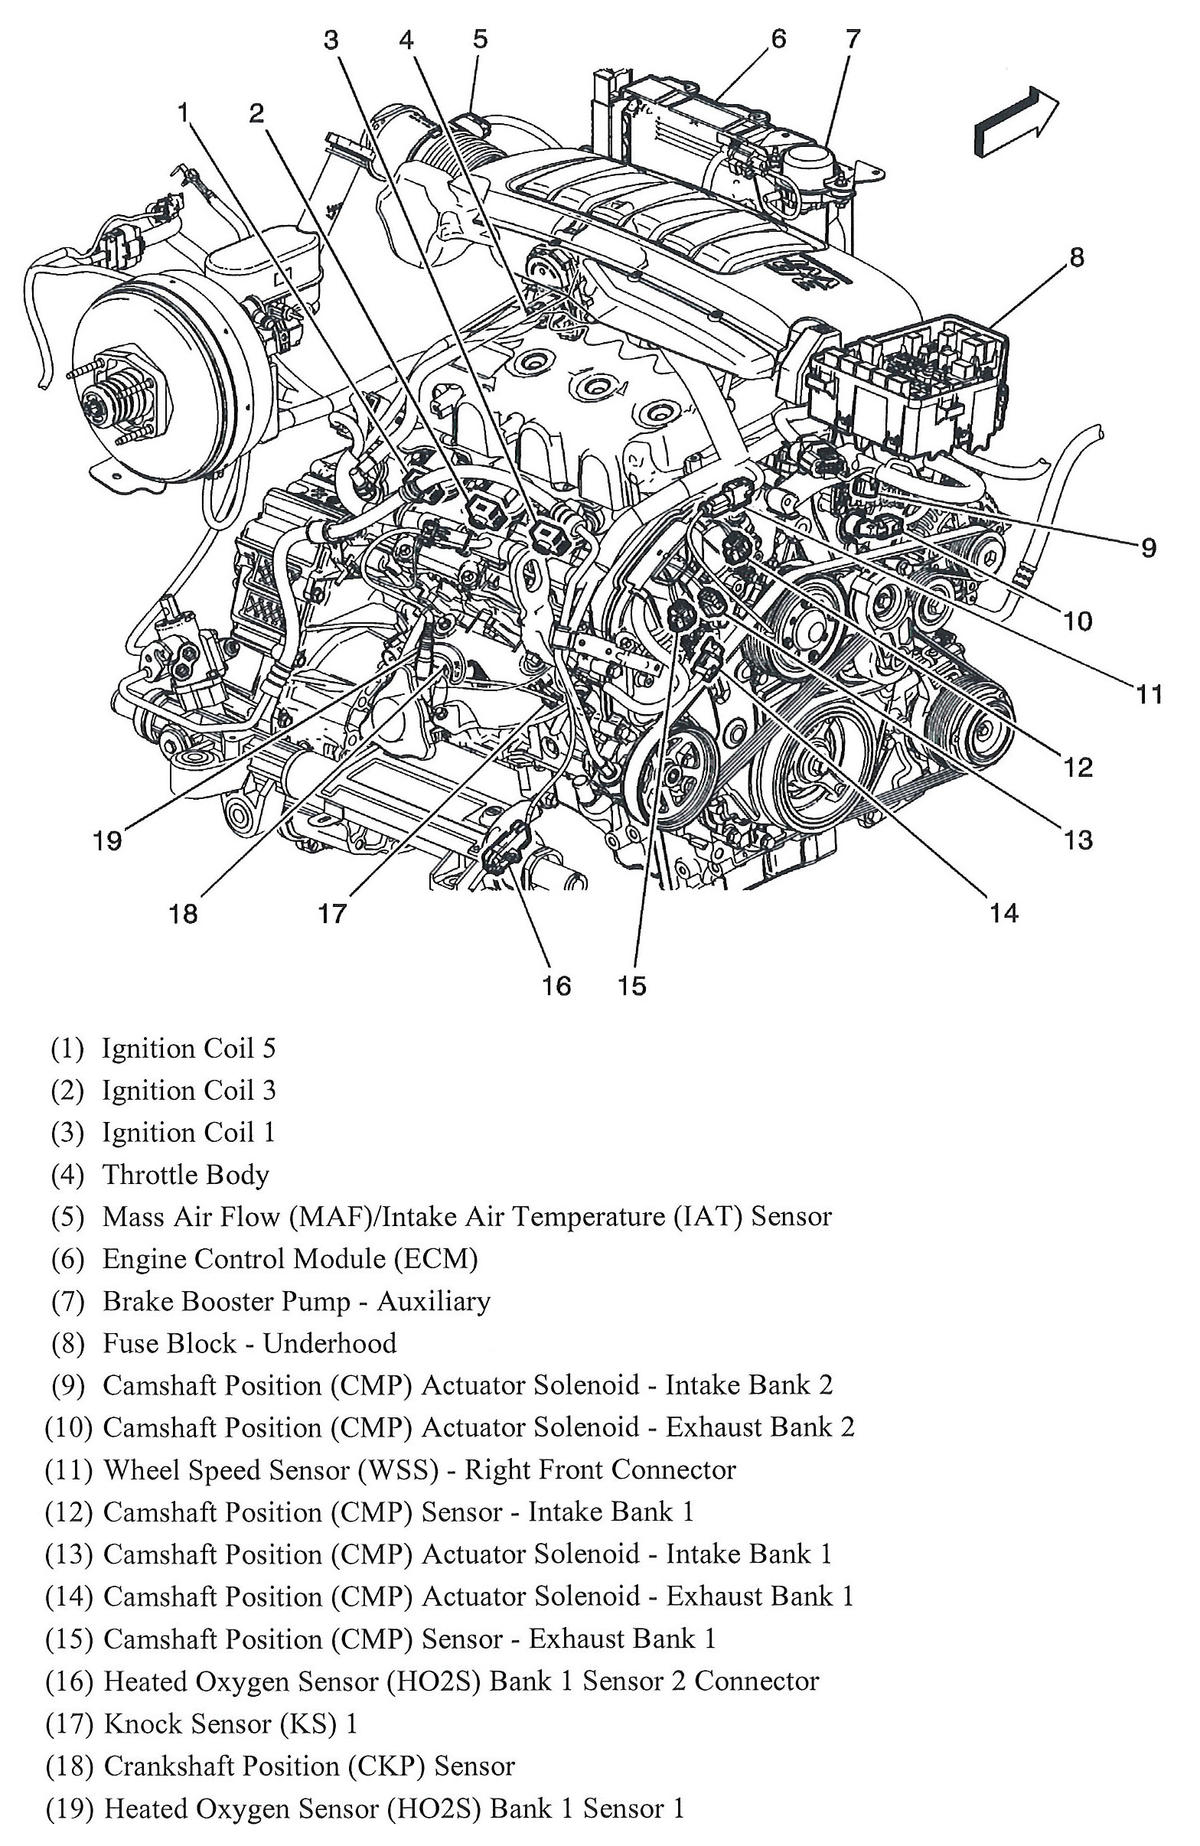 Code P0018: Crankshaft Position, Camshaft Position